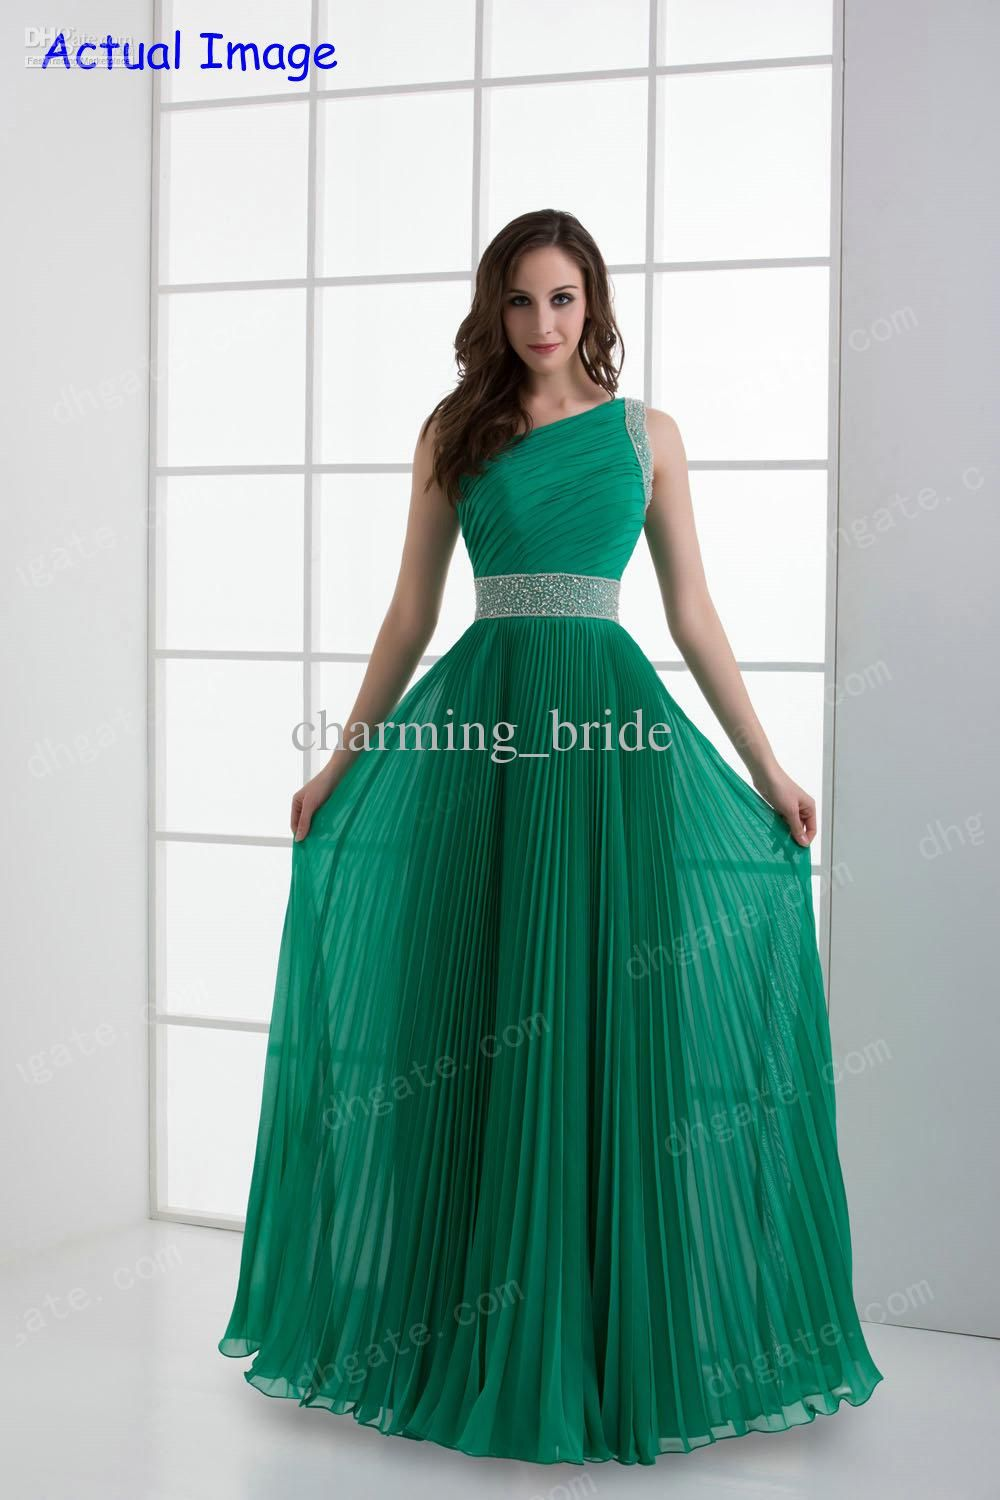 Teal Green Party Dresses_Party Dresses_dressesss